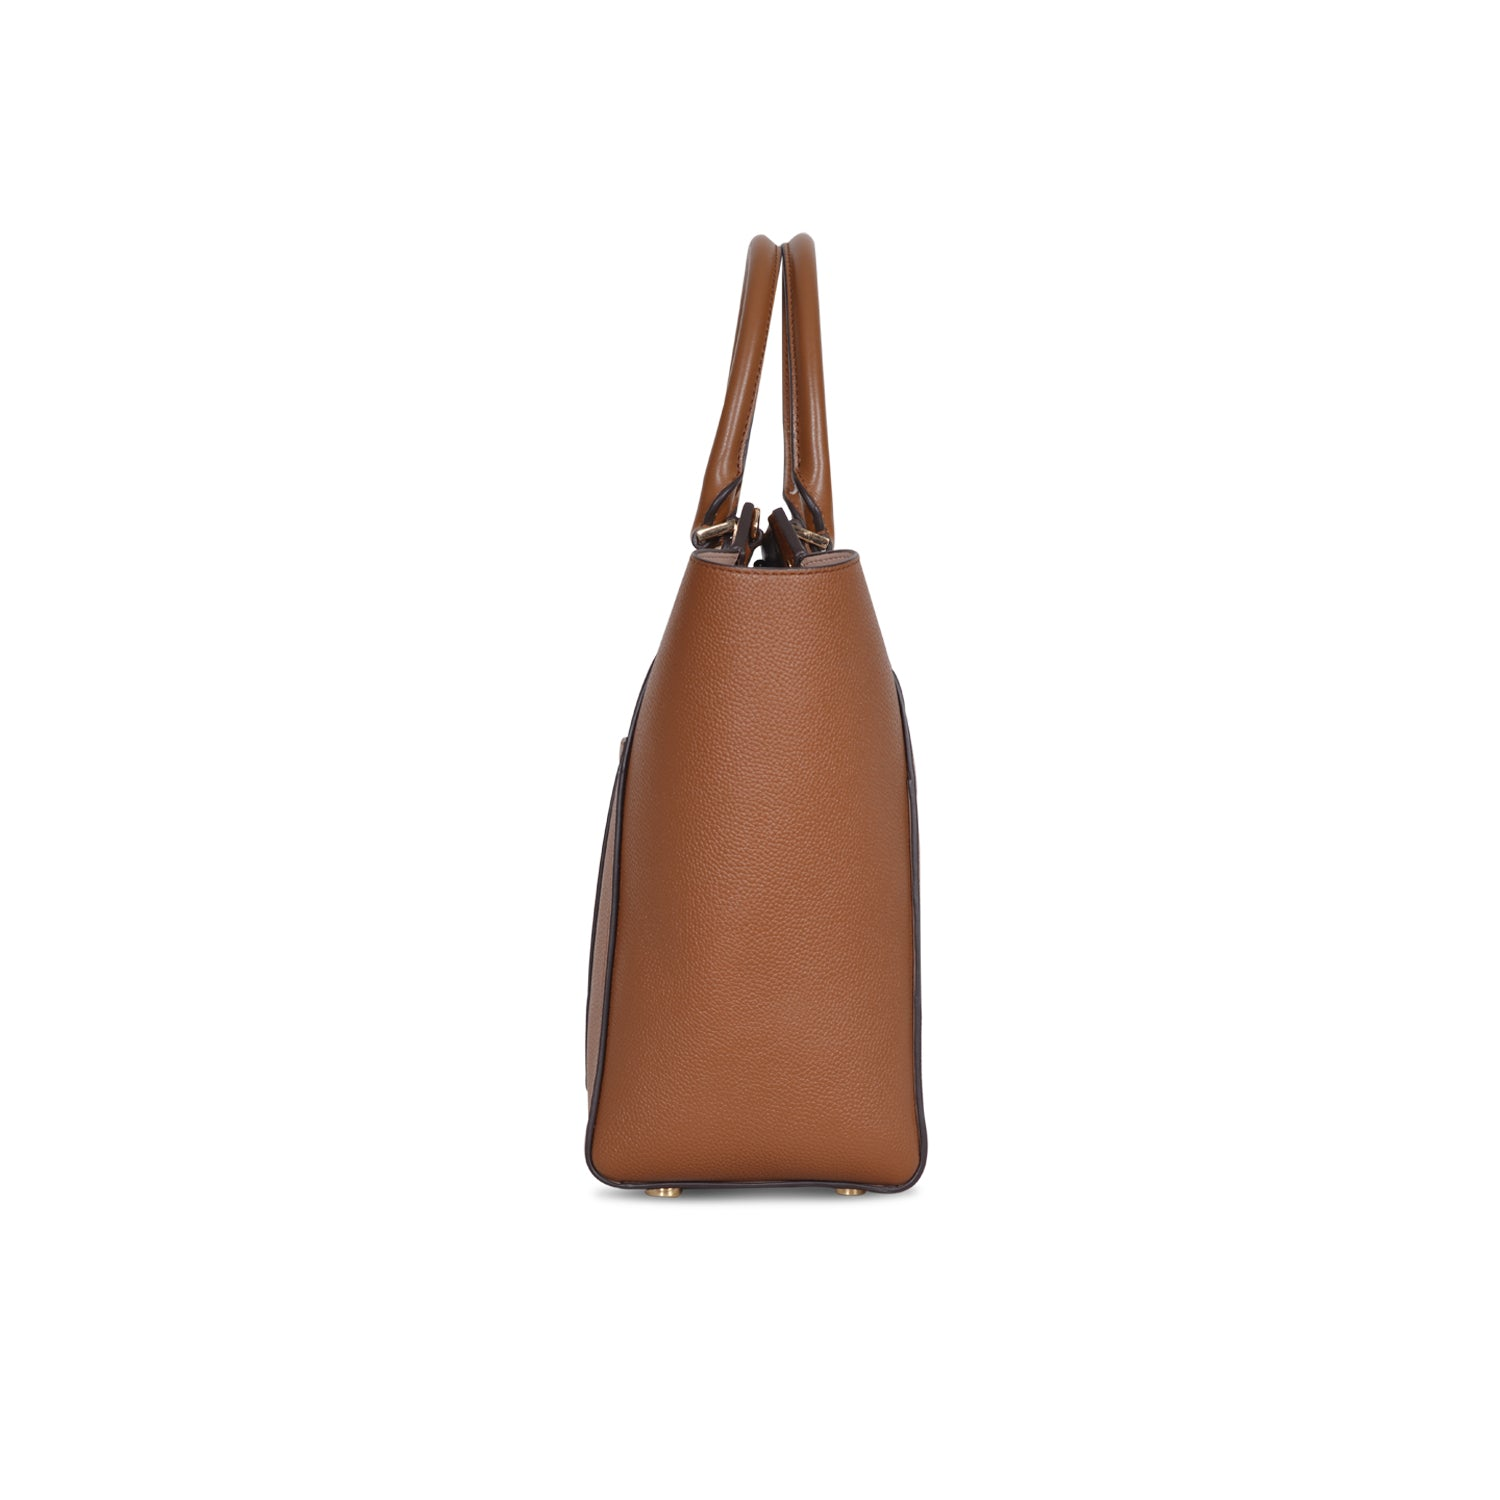 MICHAEL KORS HAYES LARGE BROWN LEATHER CONVERTIBLE TOTE SHOPPER